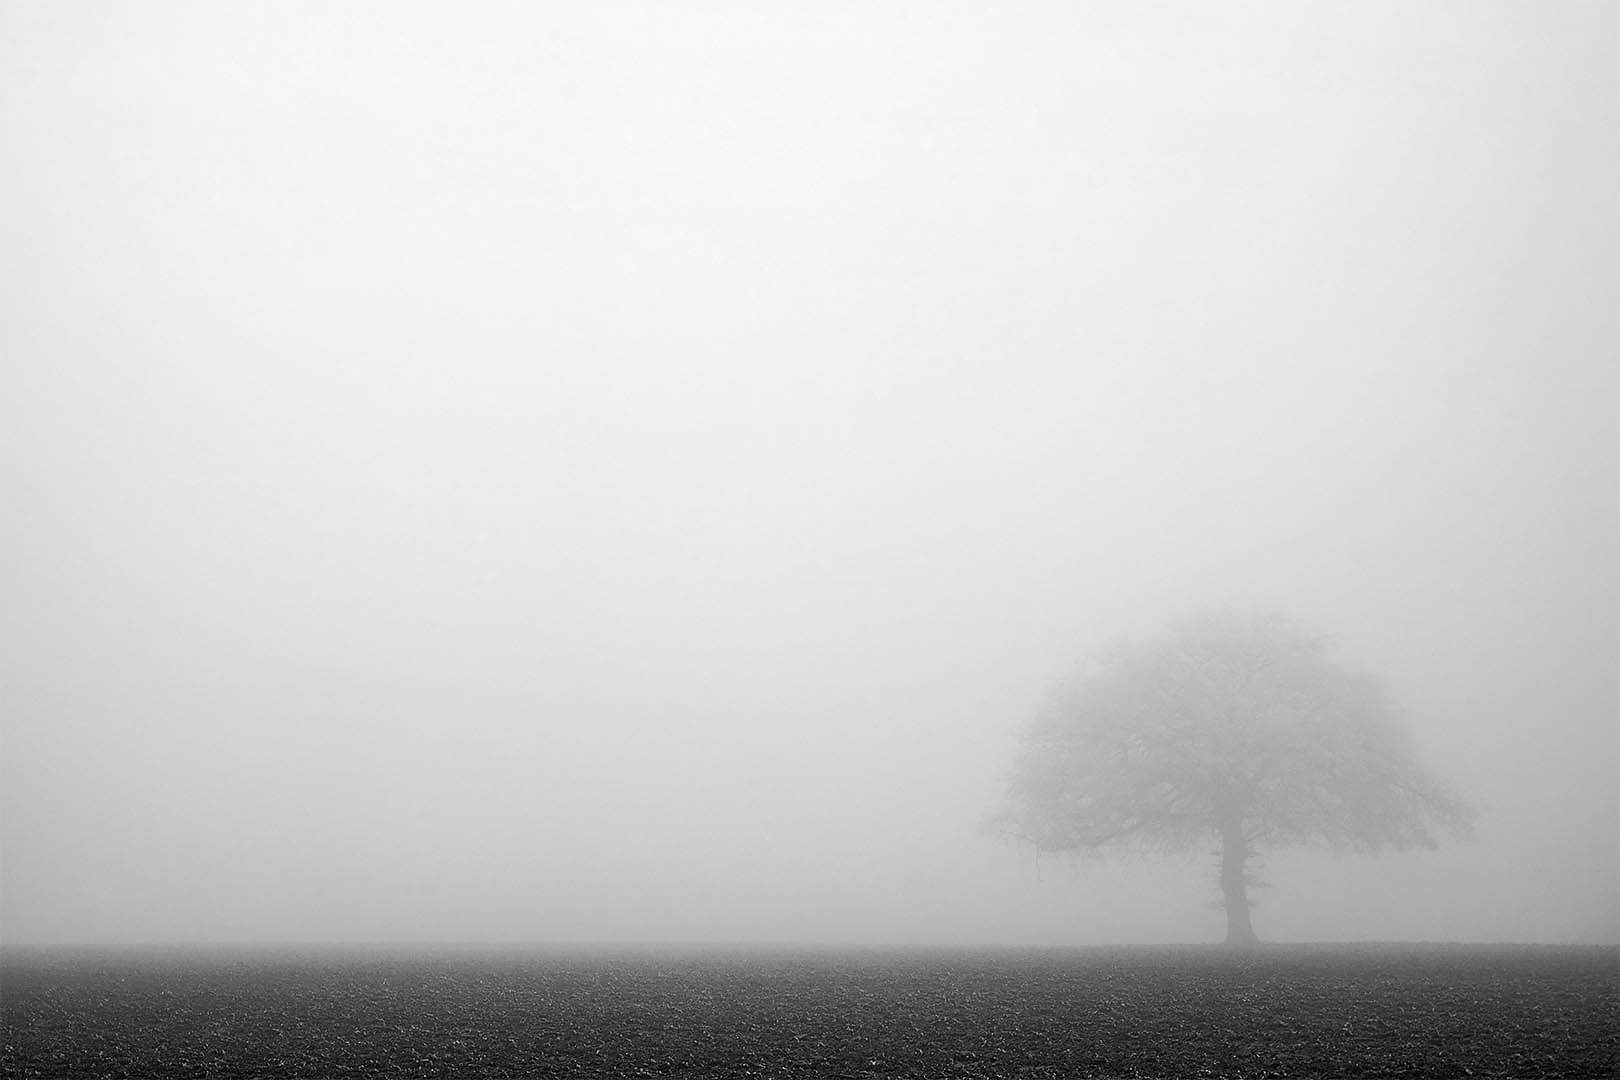 Foggy Scape